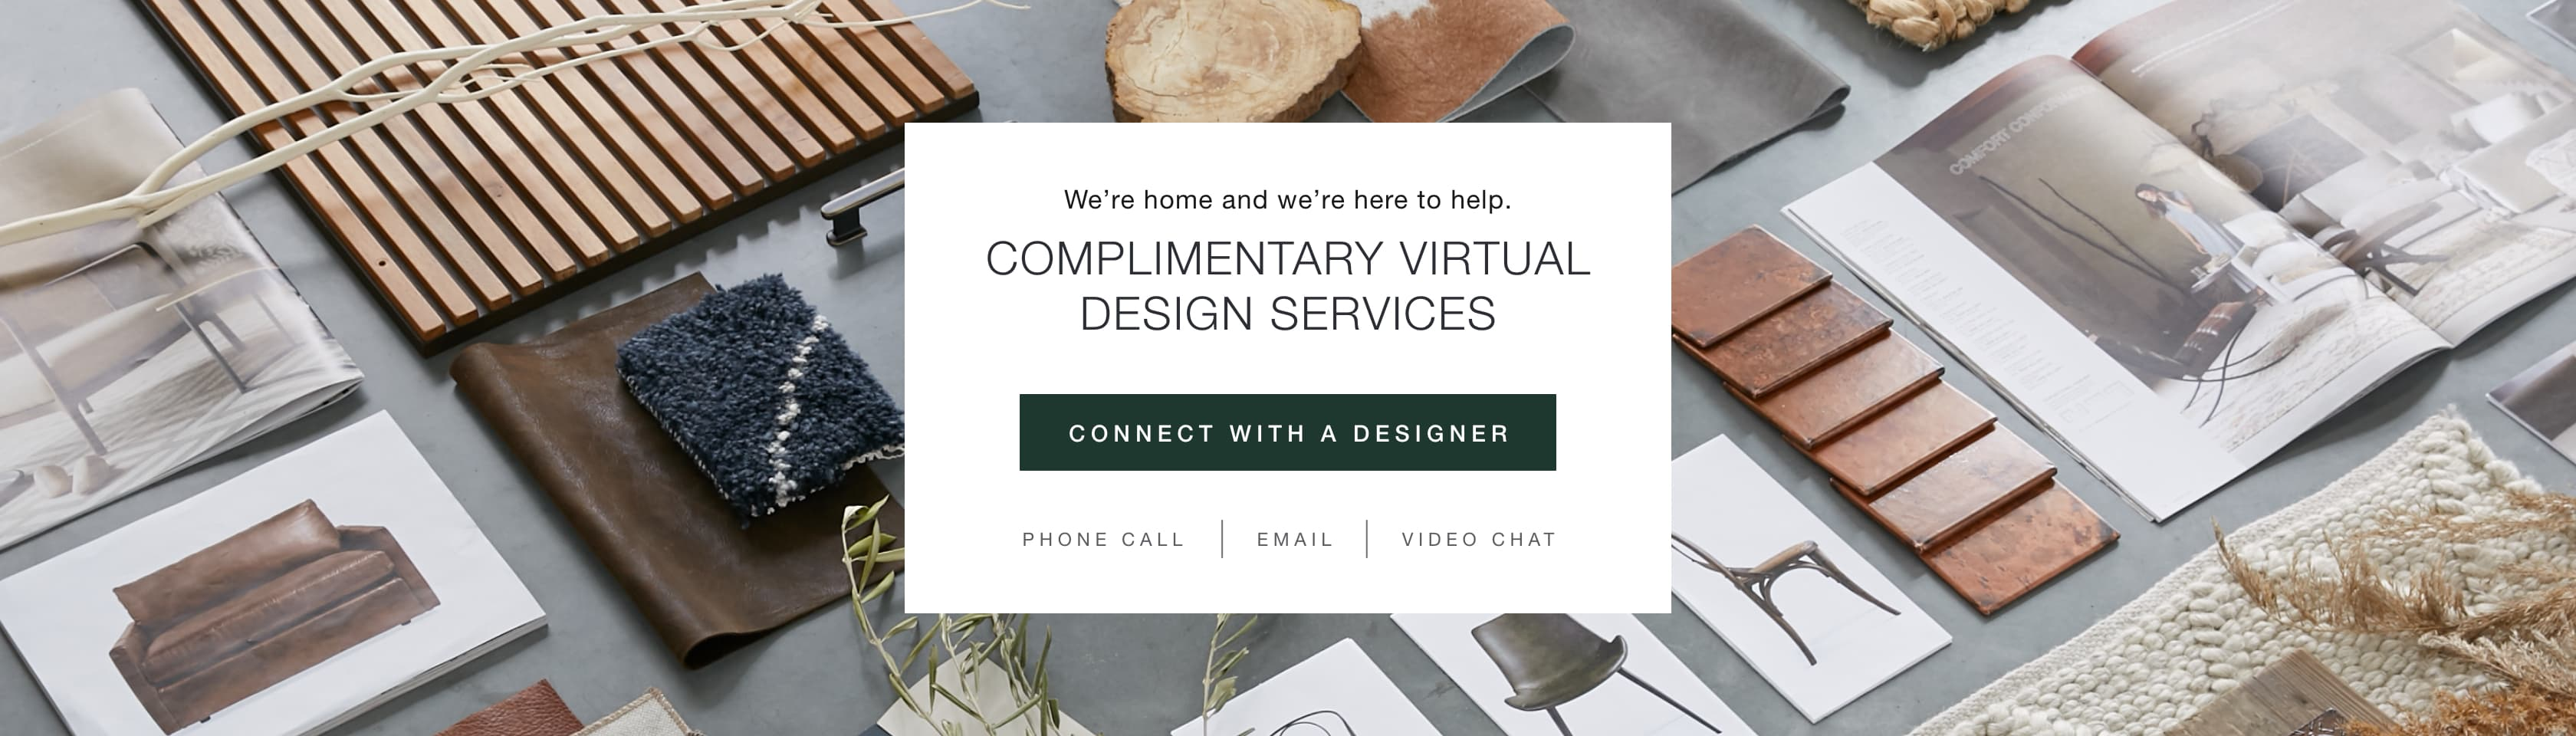 Connect with a Designer